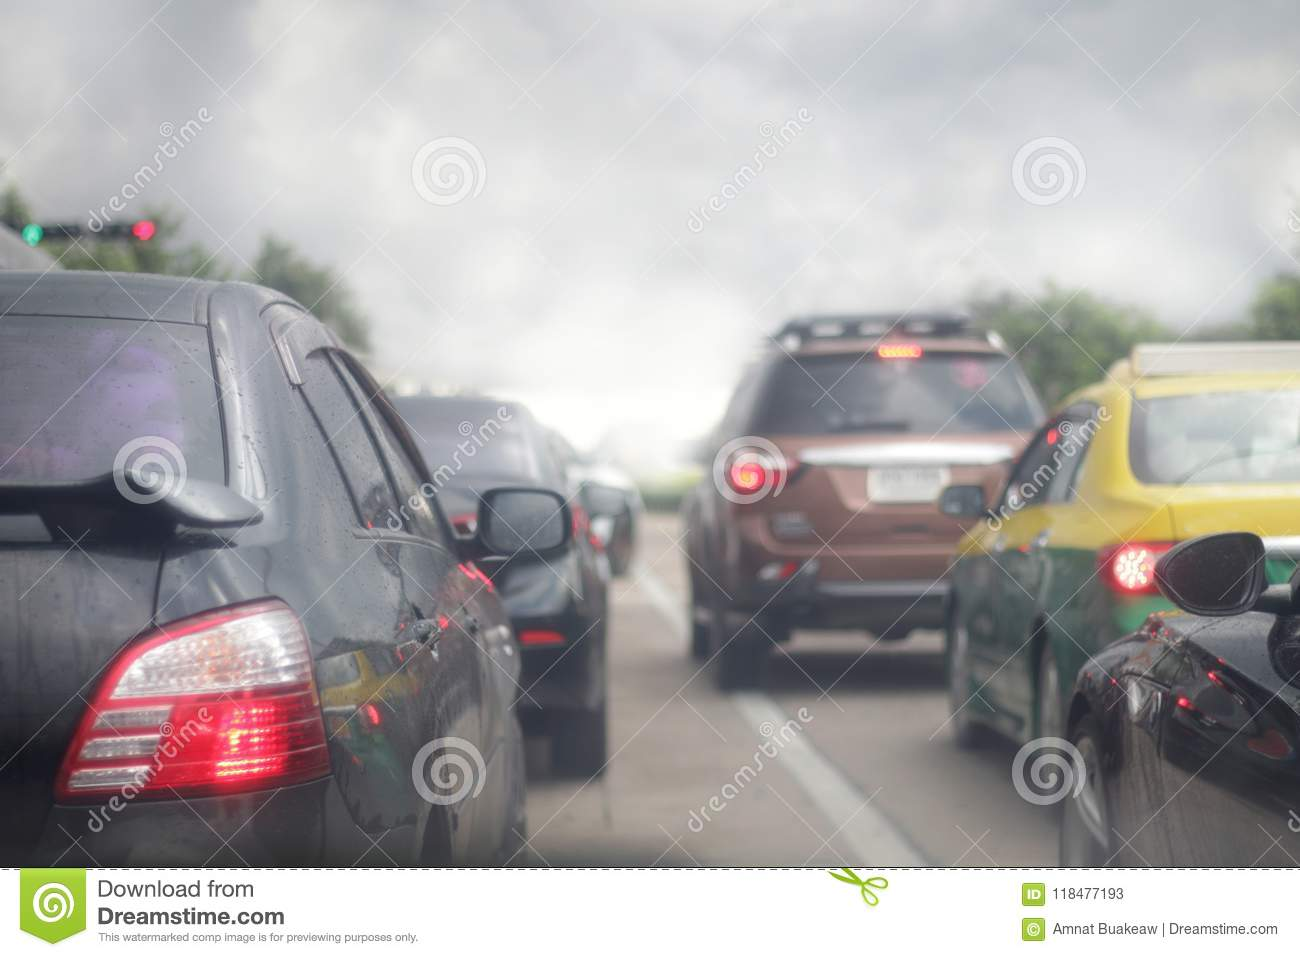 Traffic jam of cars, smog pollution on the road, blur picture